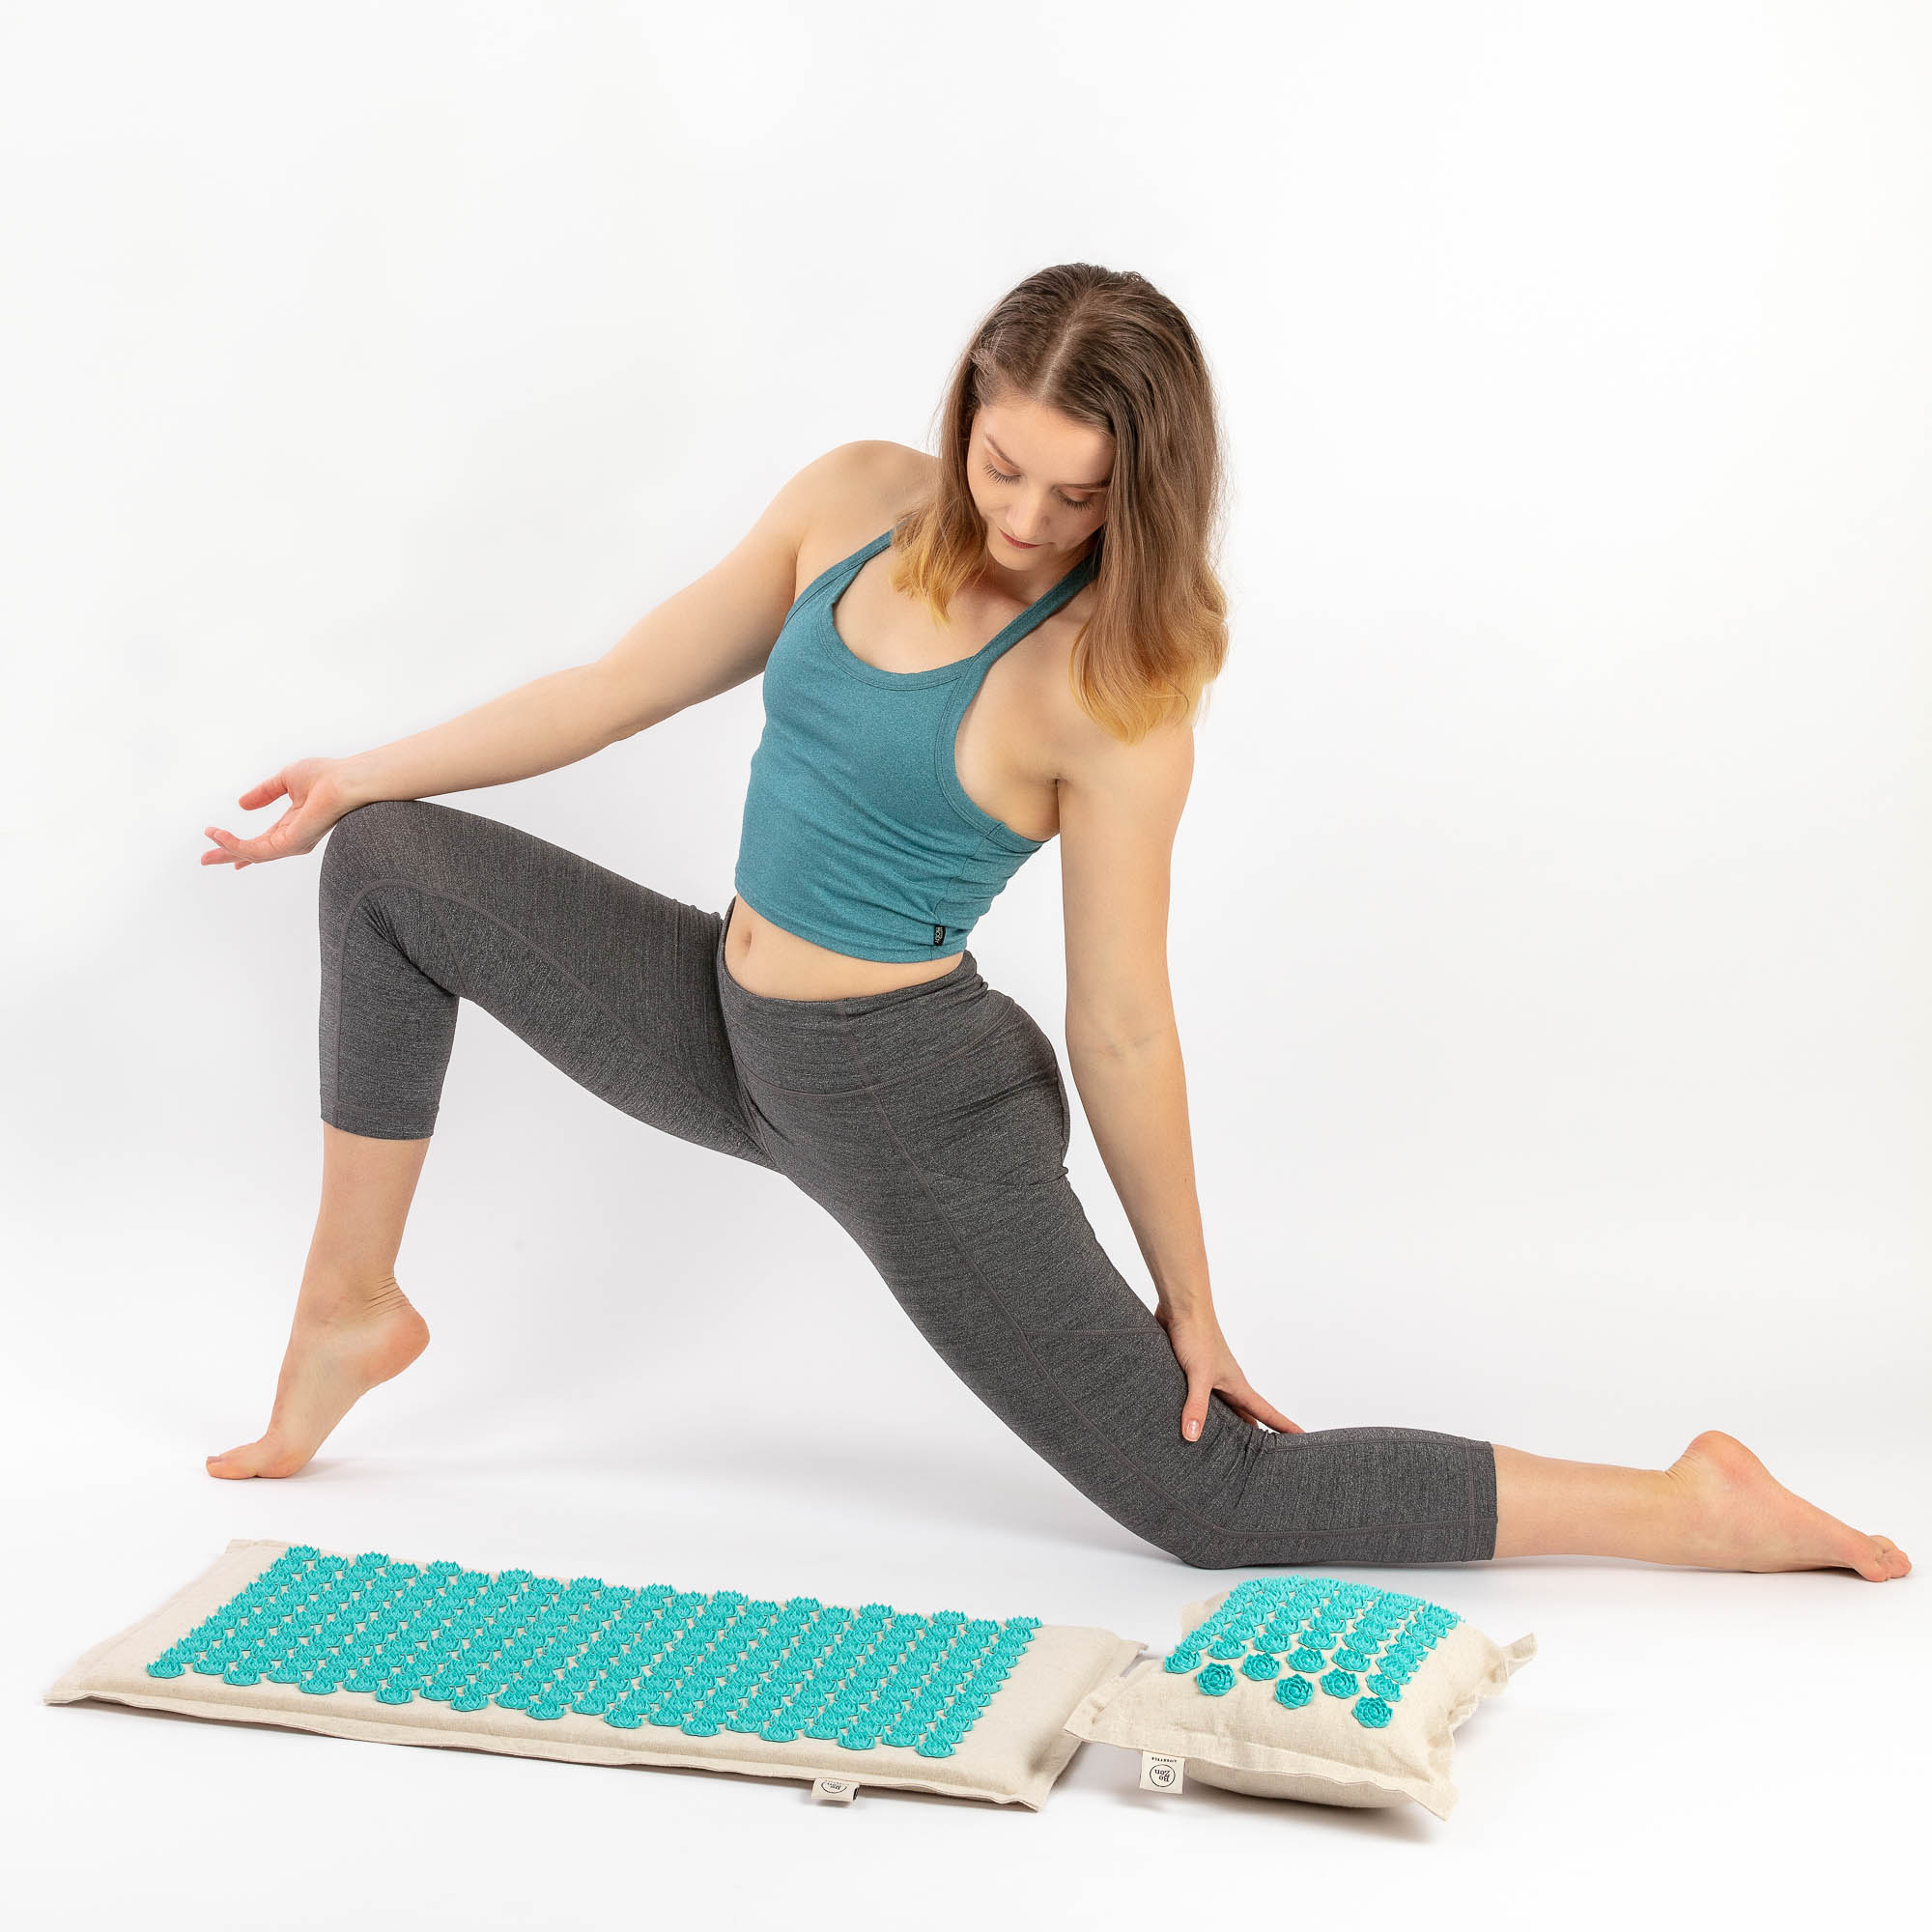 Be Zen exercise on side of mat - Lifestyle product photography with model